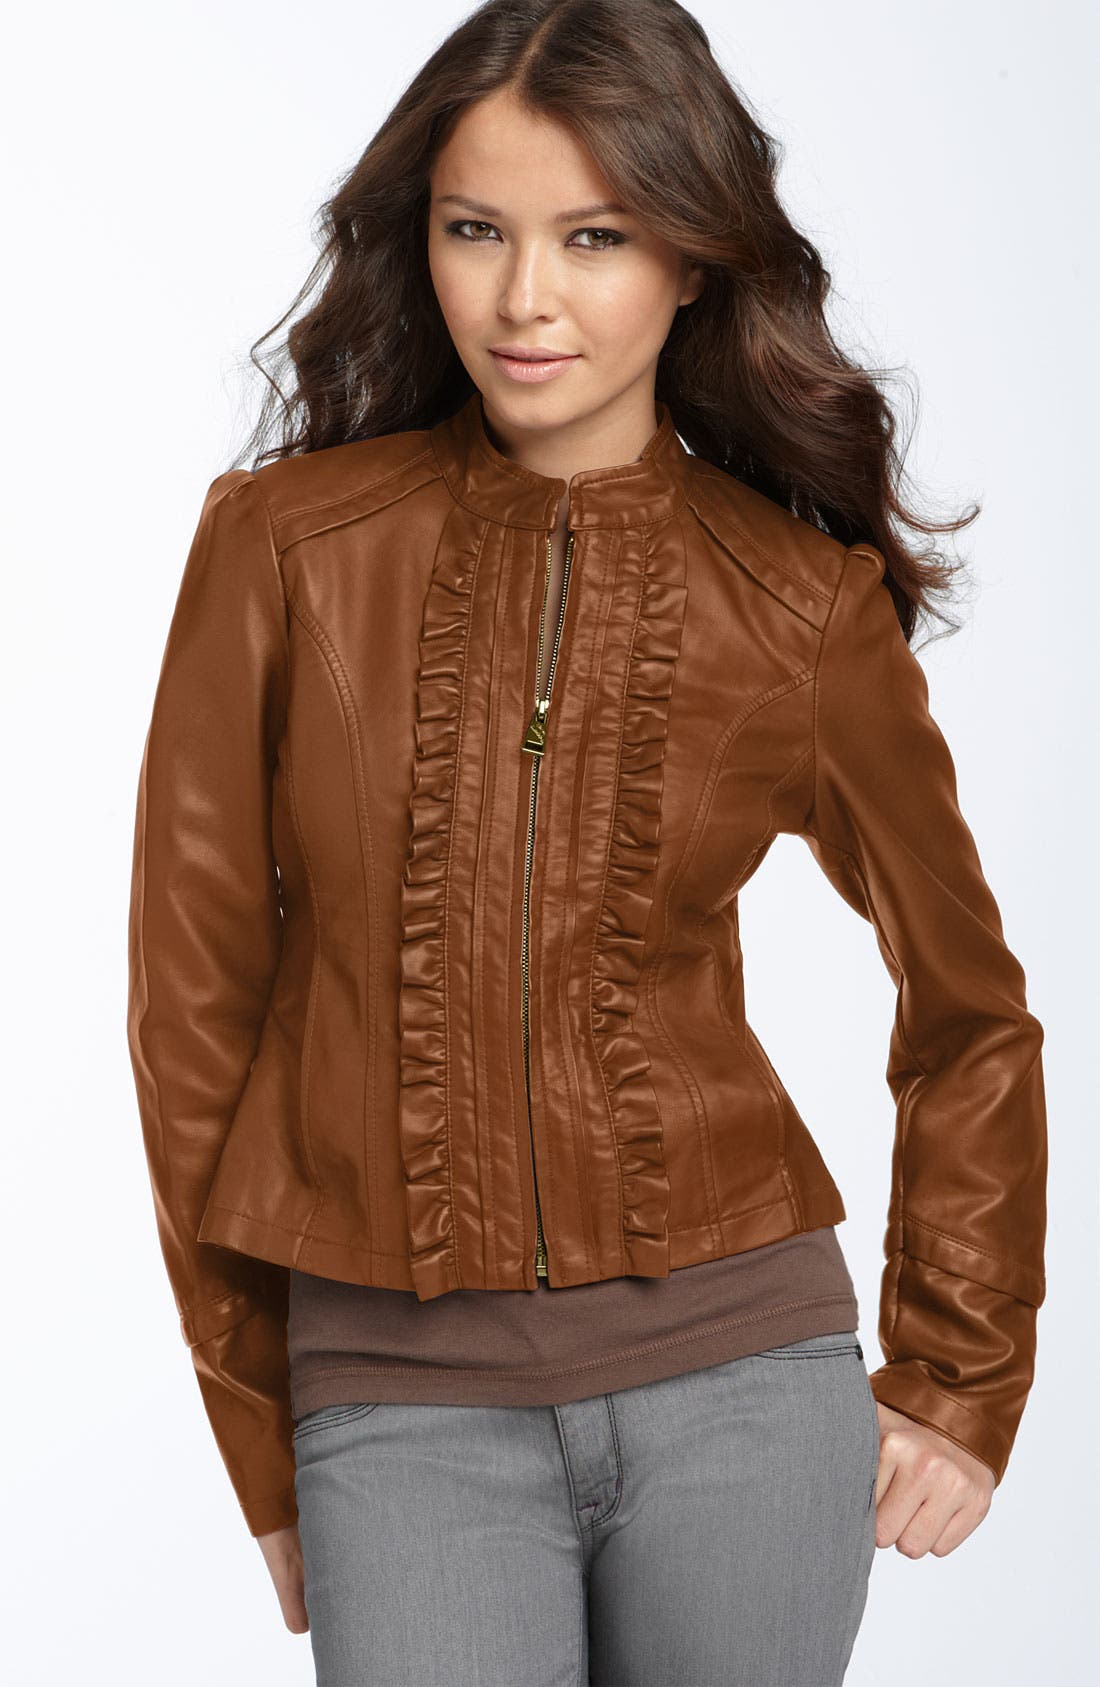 Alternate Image 1 Selected - Steve Madden Ruffled Faux Leather Jacket